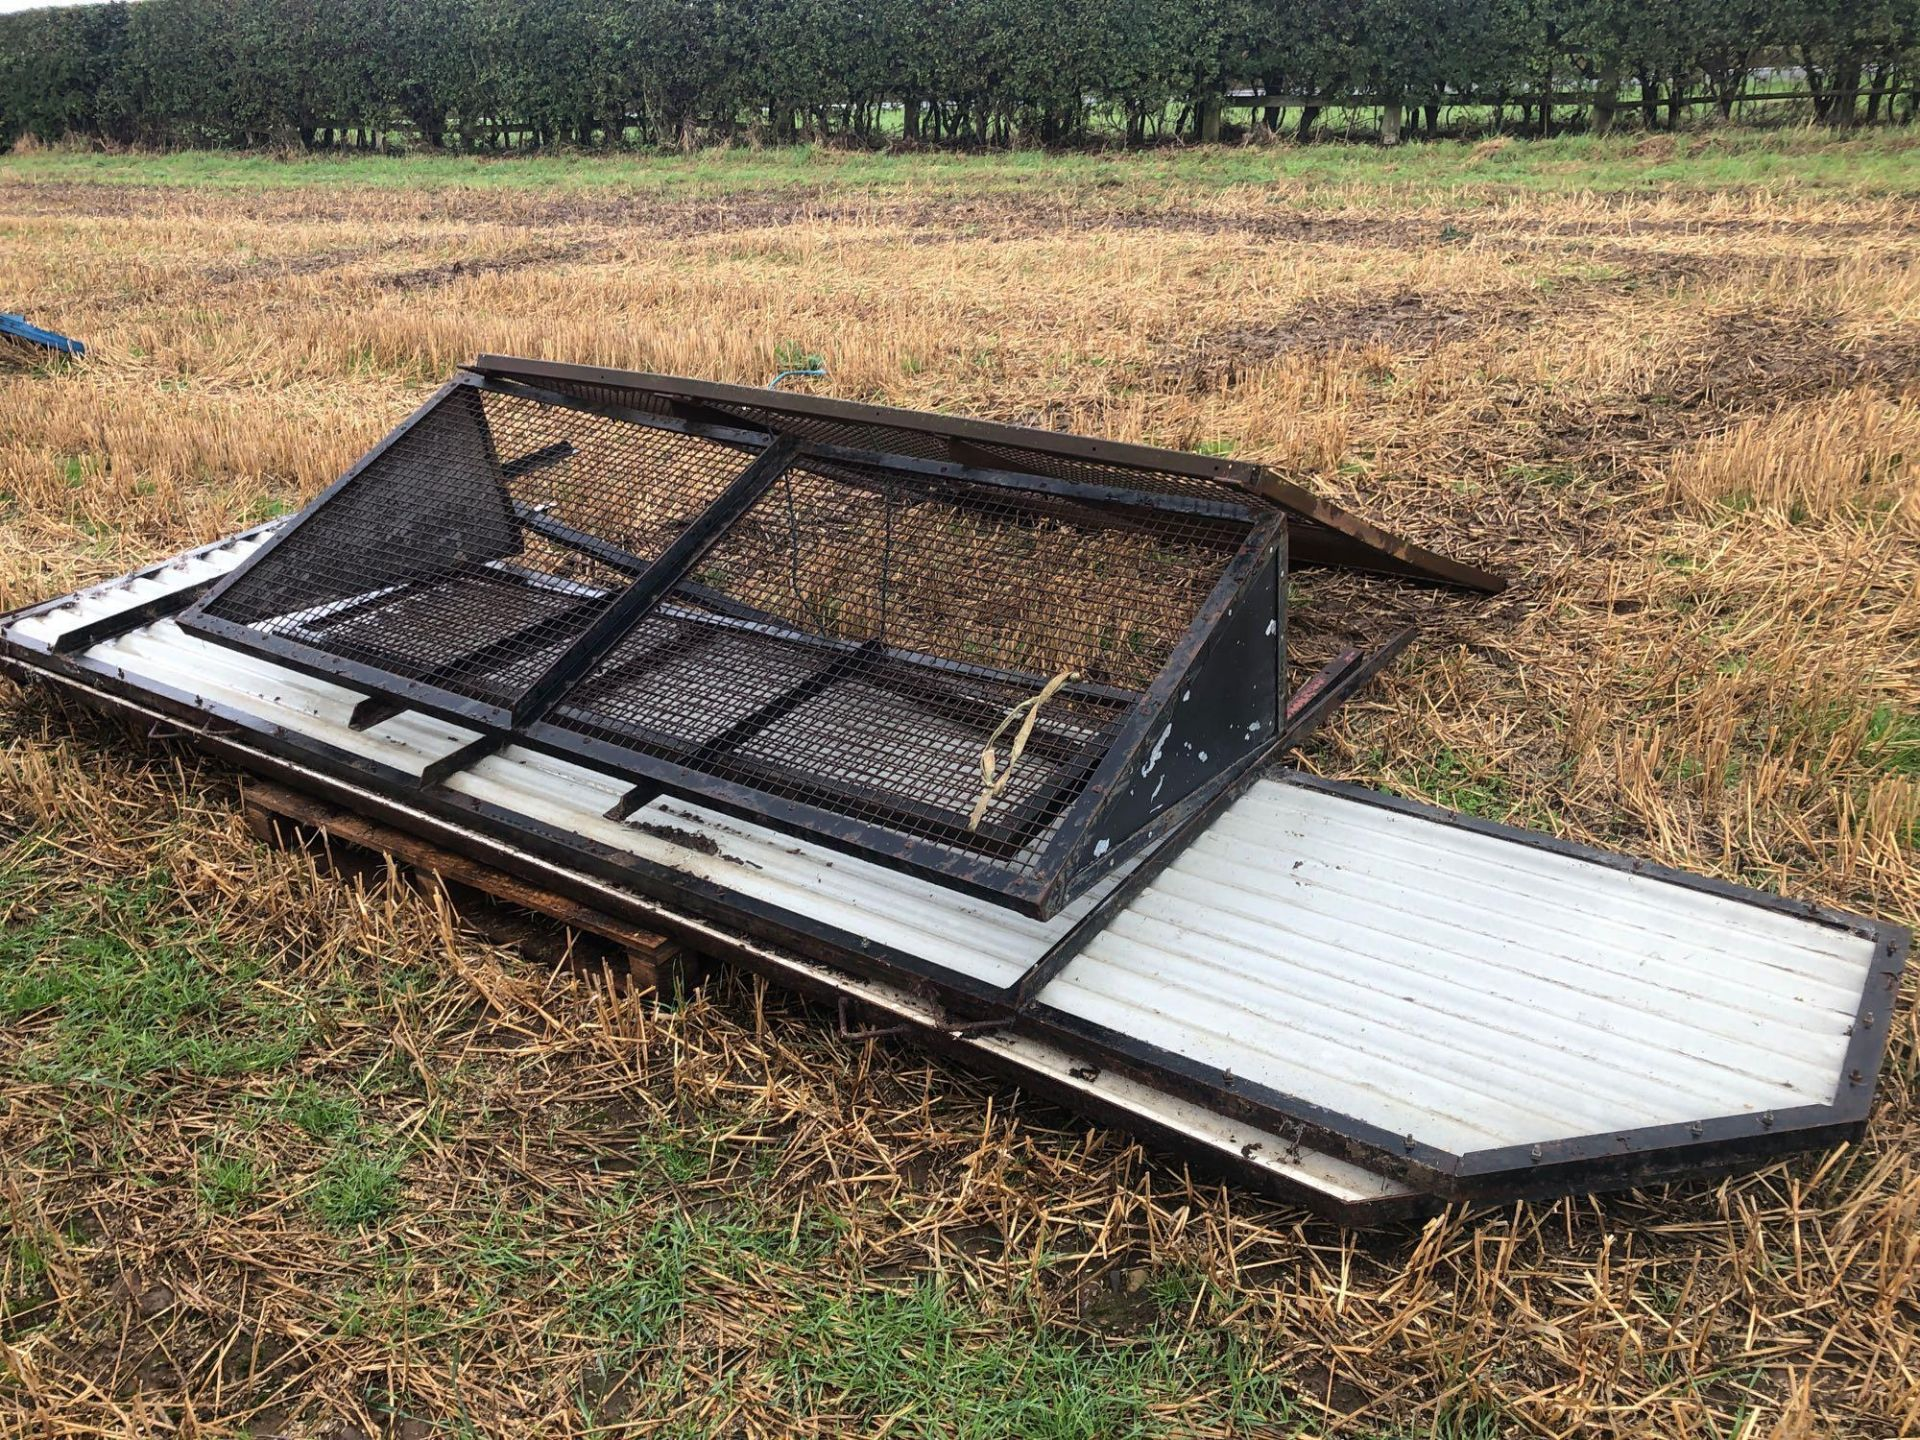 1978 6t homemade single axle trailer. C/w silage sides and back door. - Image 7 of 8